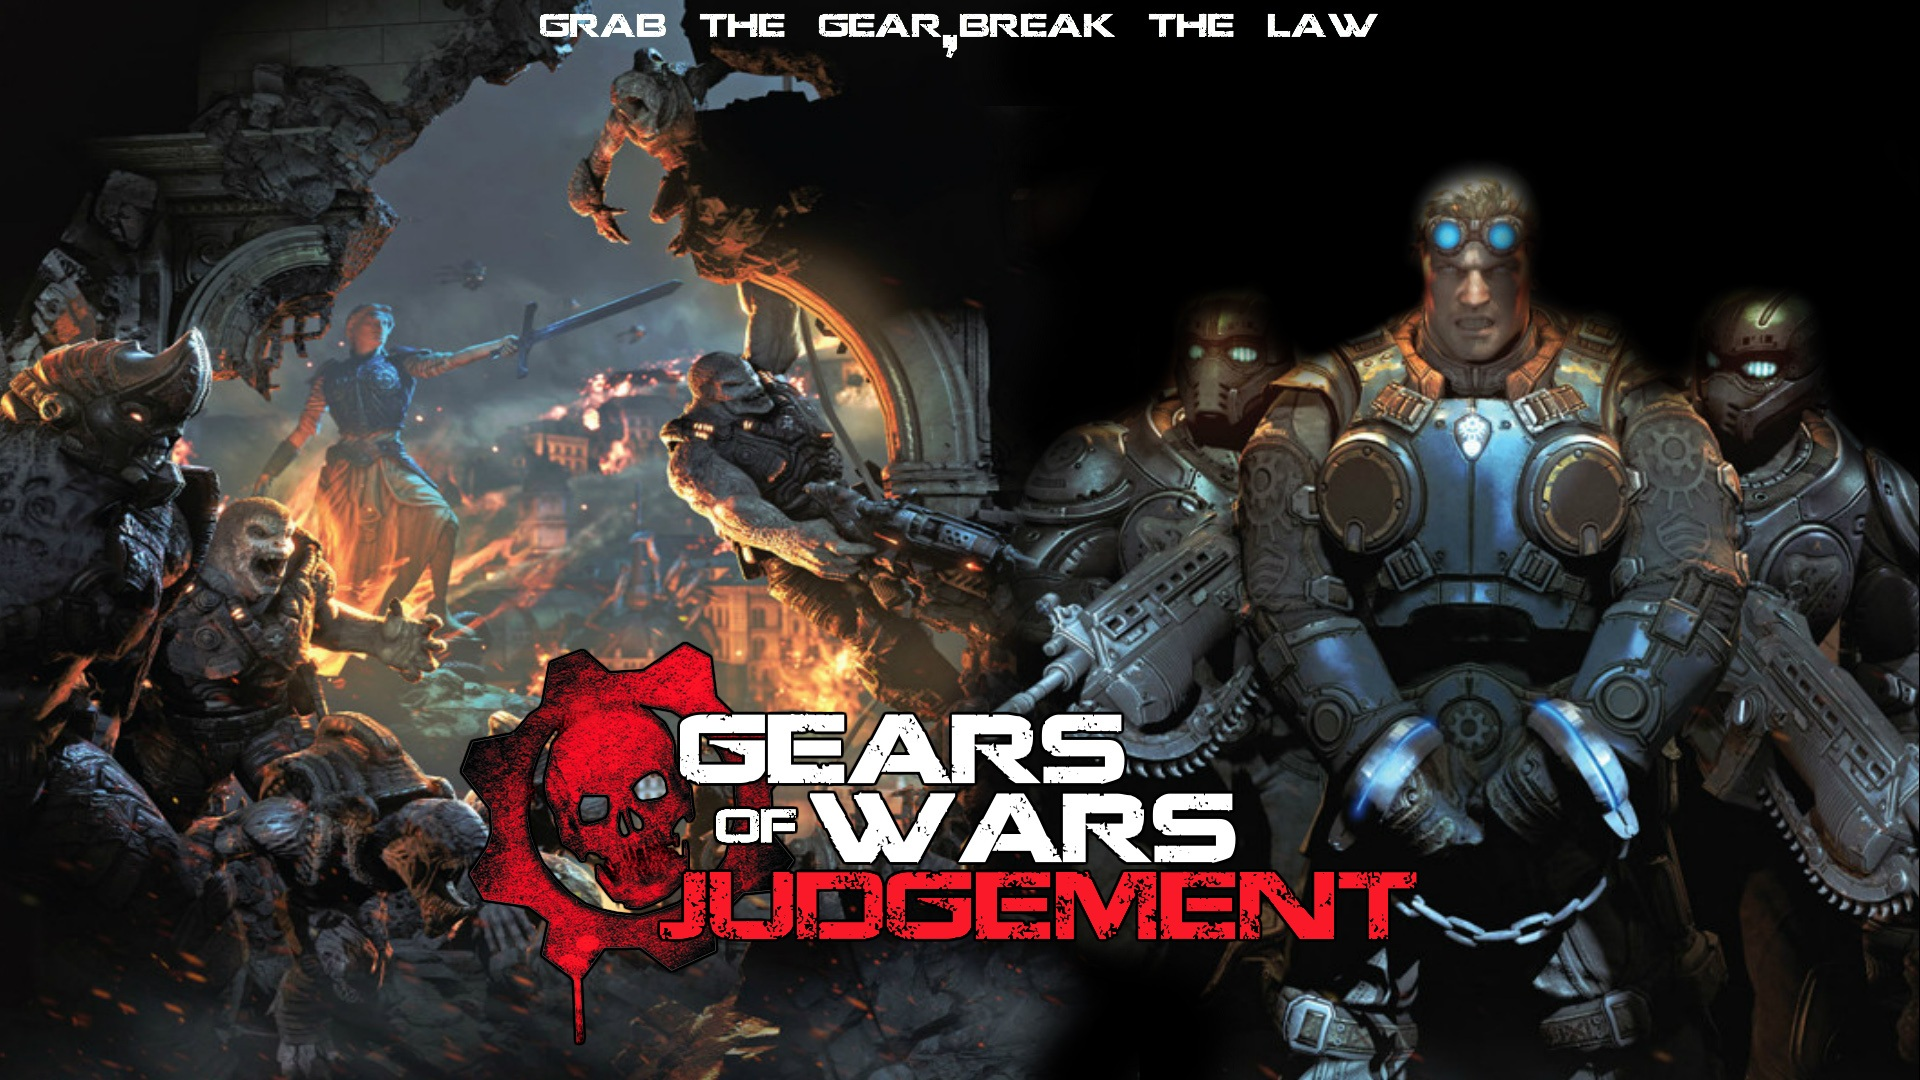 Wallpaper Gears Of War Judgment Hd 1920x1080 Full Hd 2k Picture